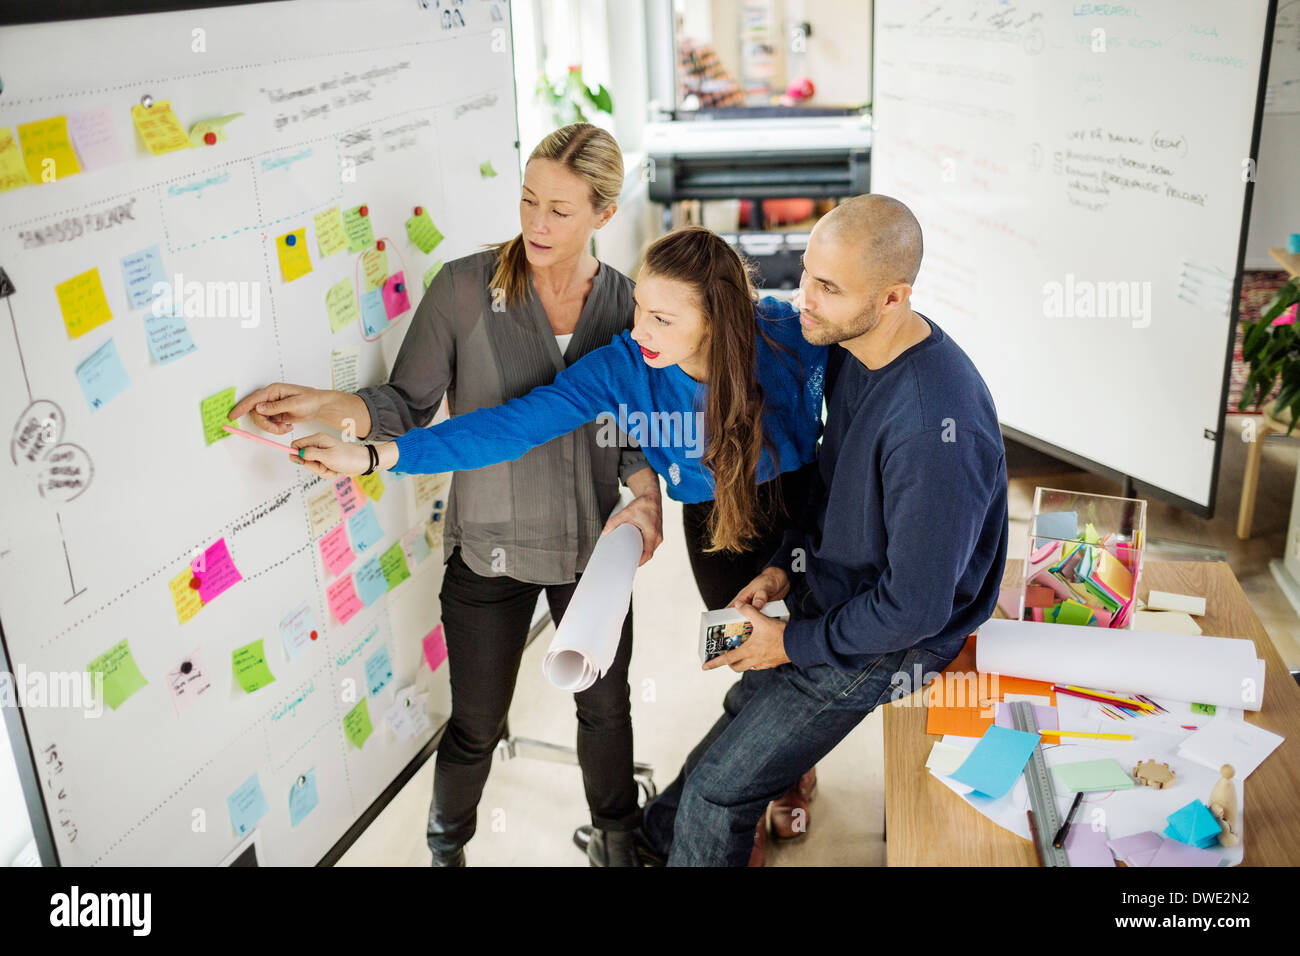 Business people reading reminder in creative office - Stock Image